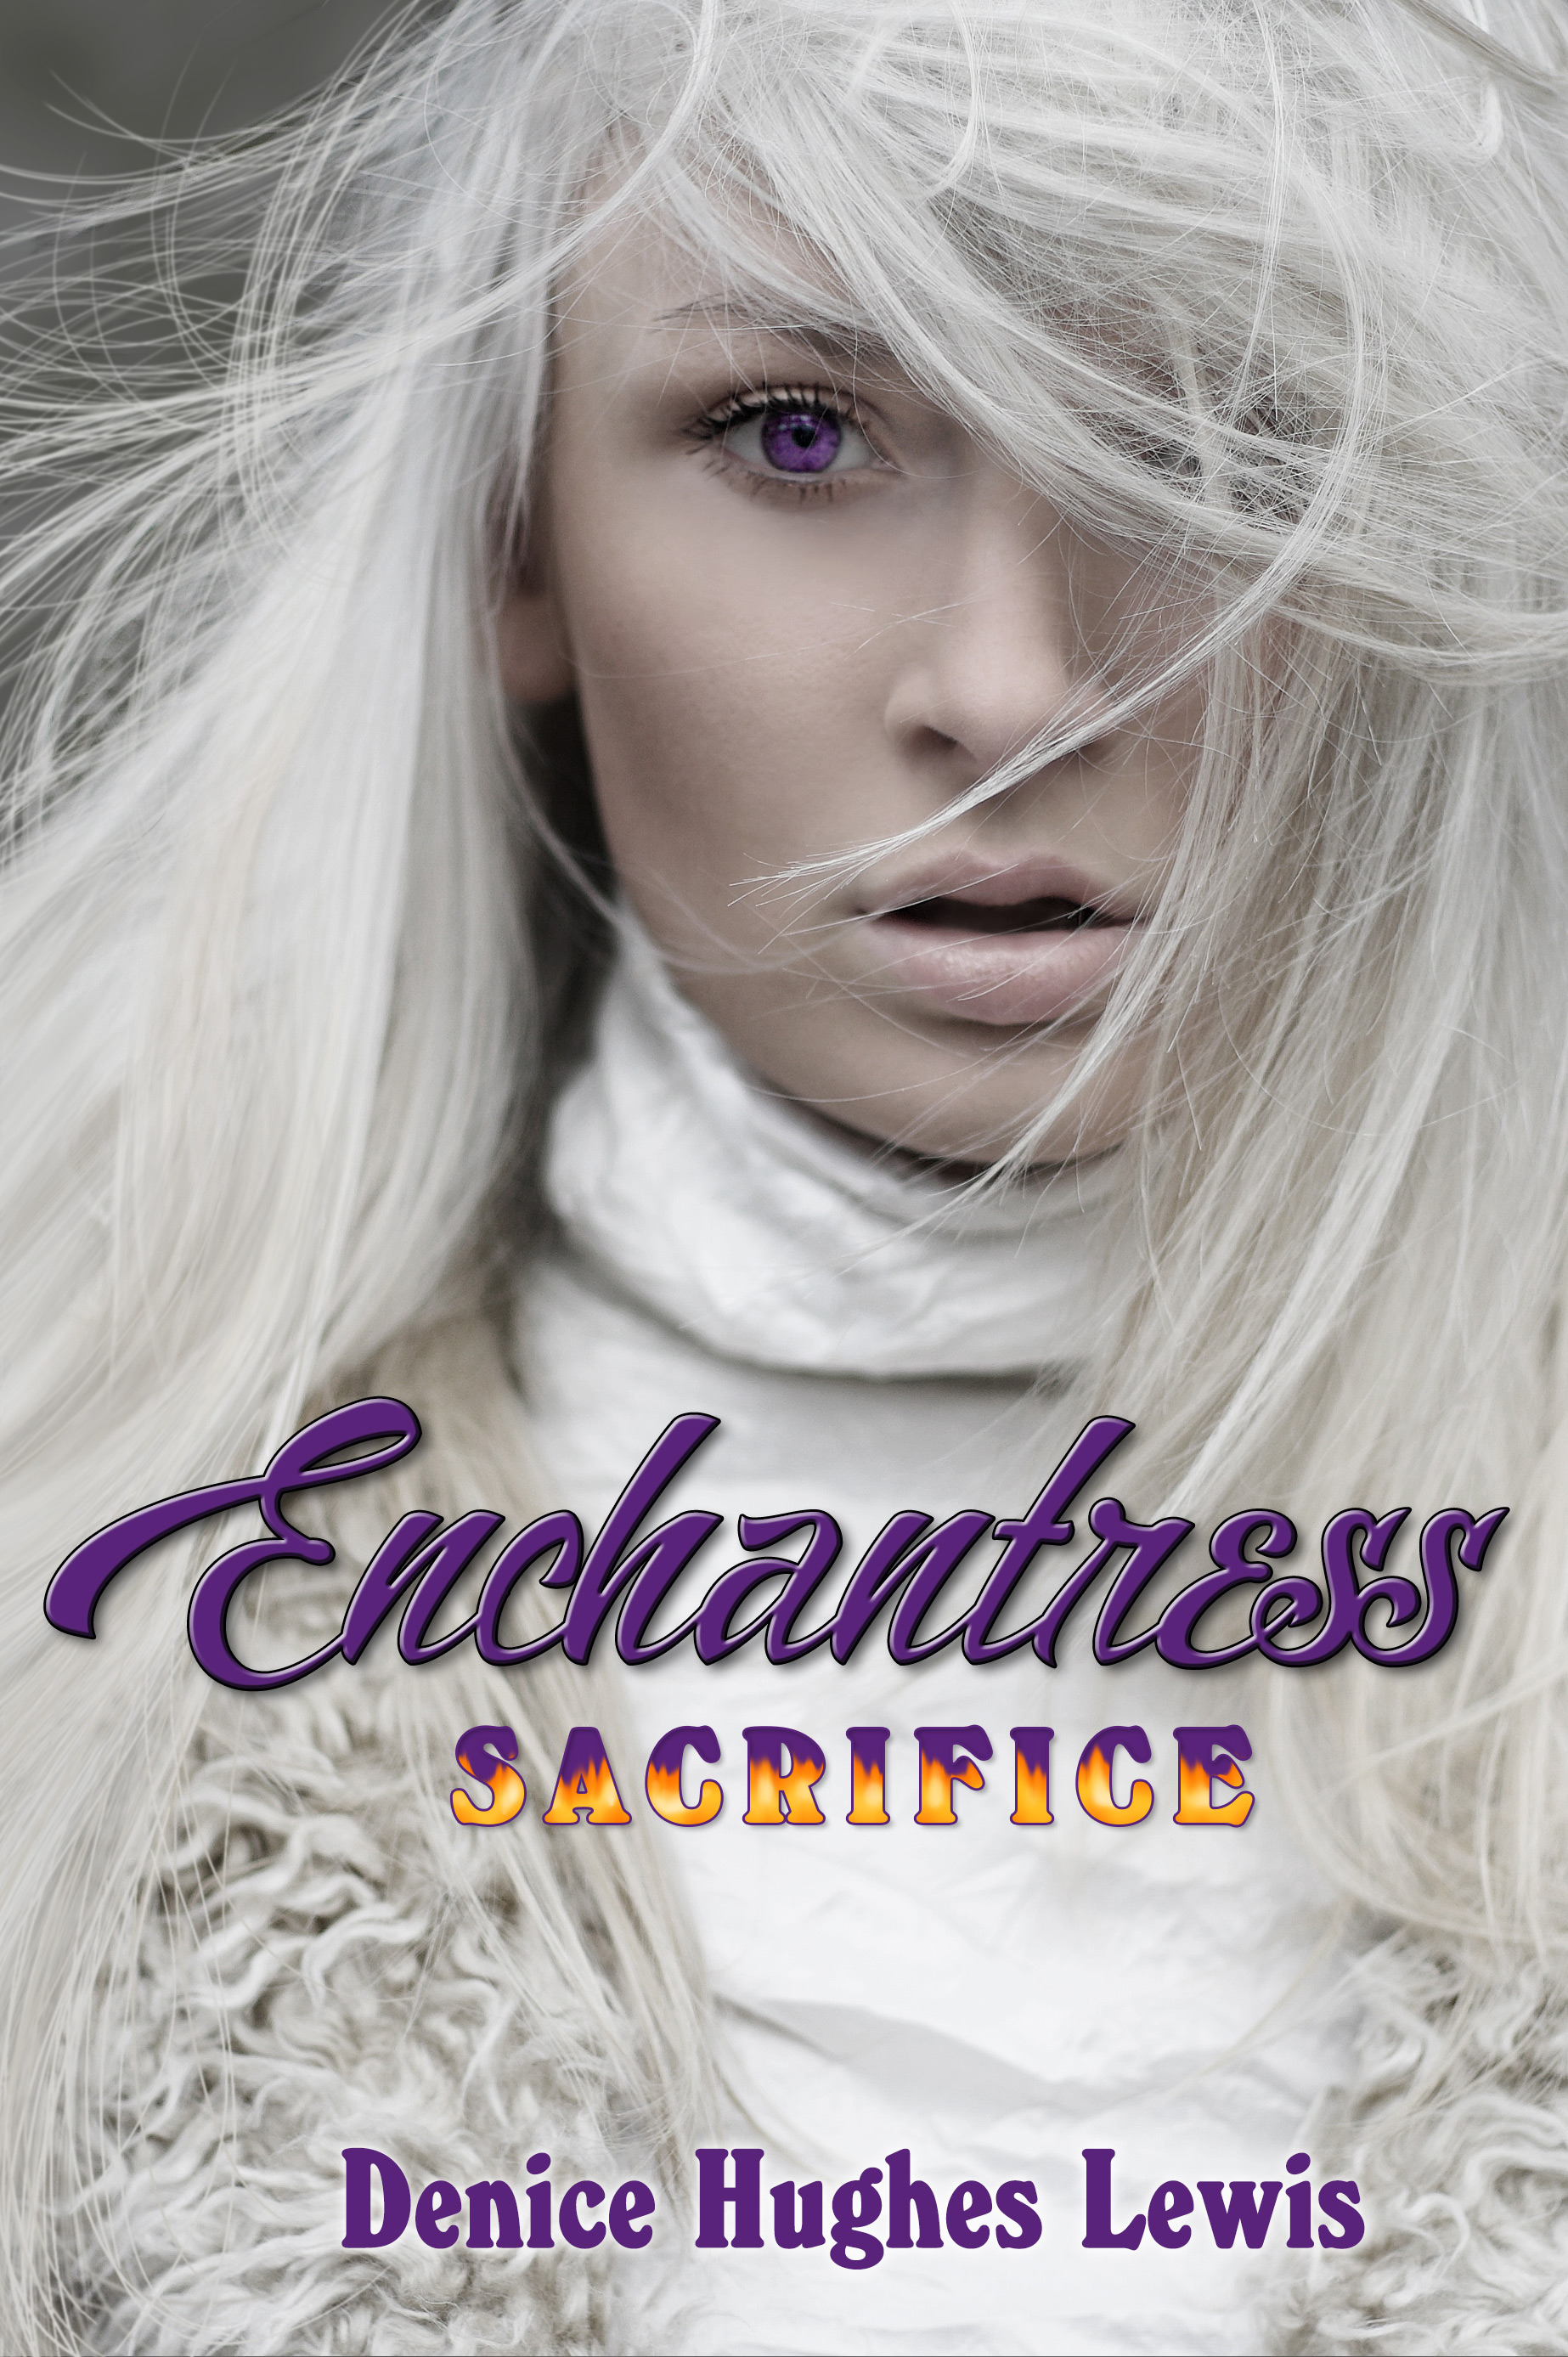 Enchantress Sacrifice